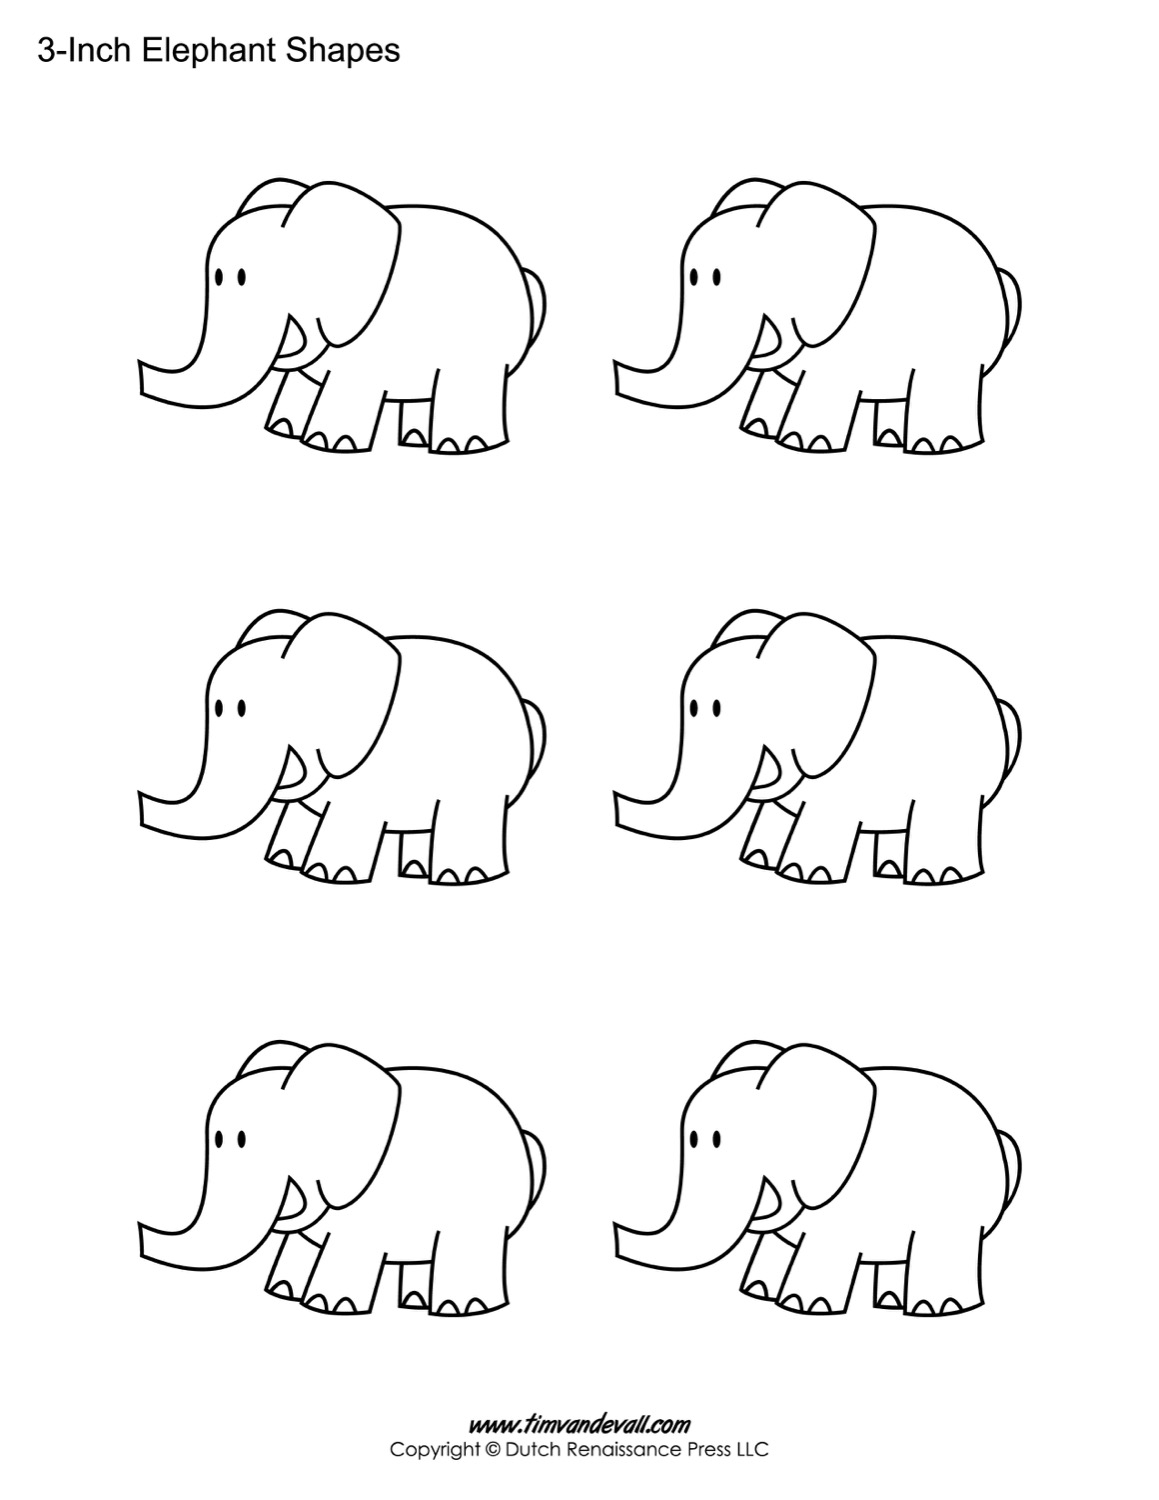 Printable Elephant Templates Elephant Shapes For Kids